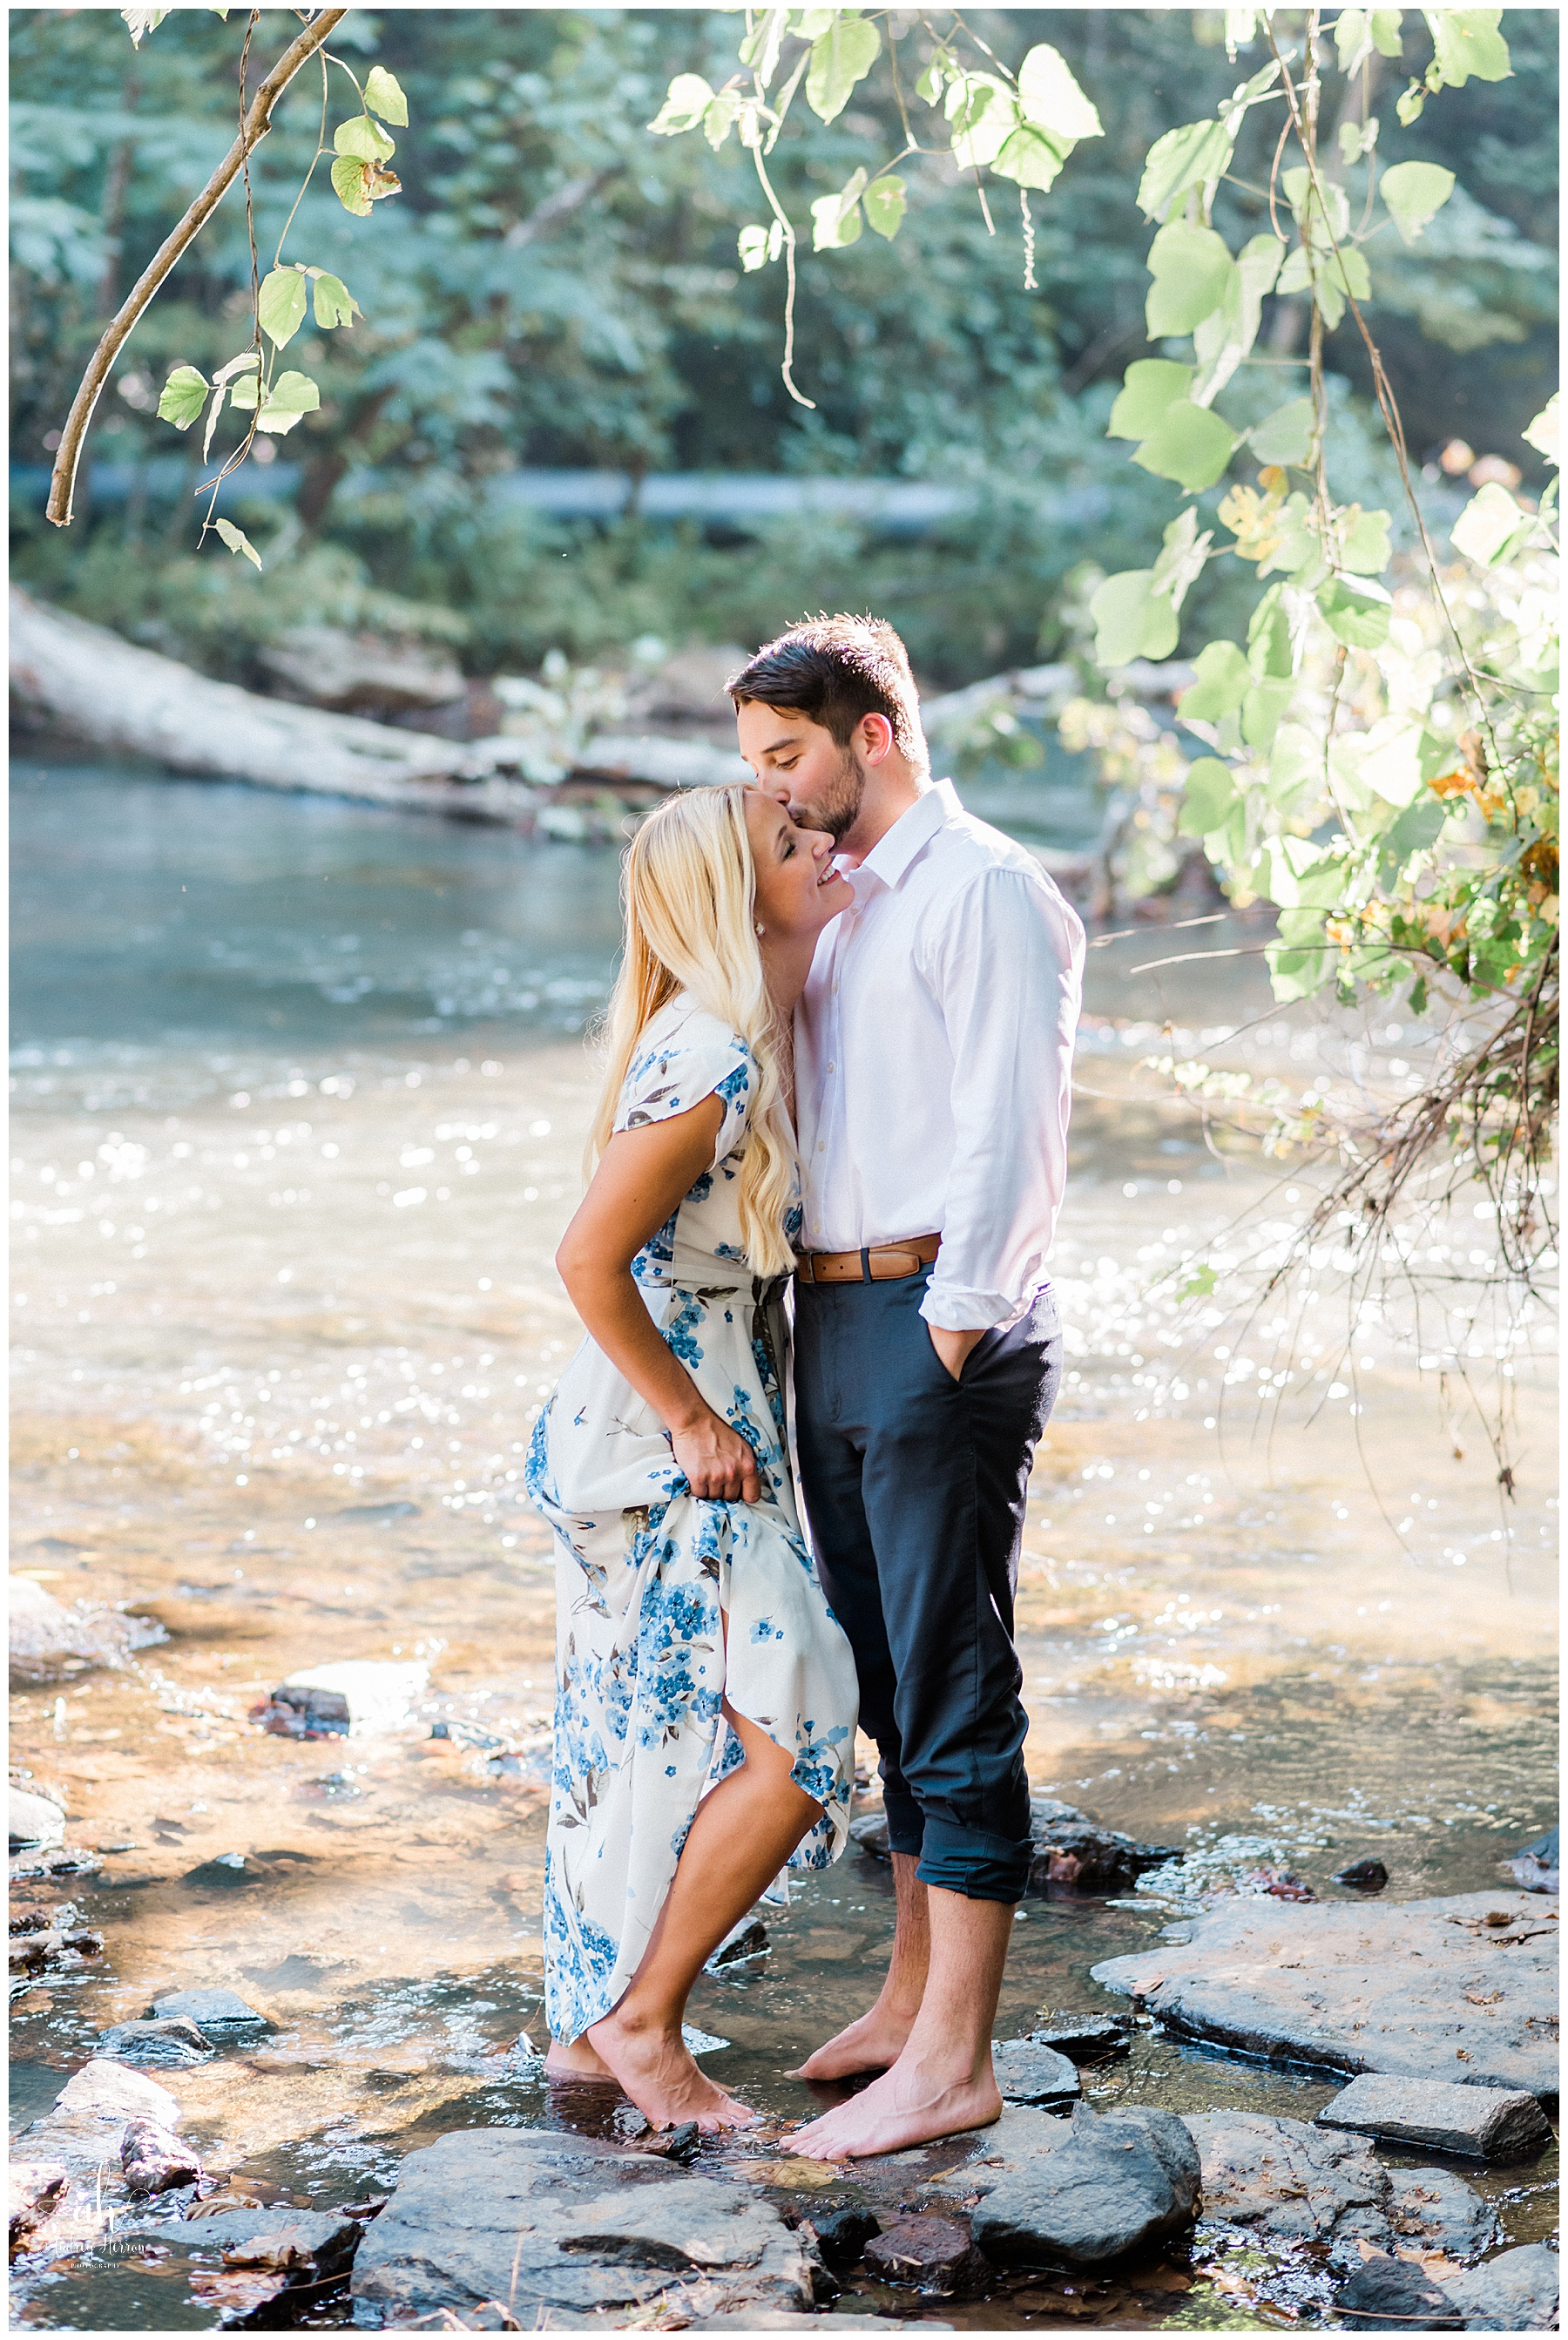 Barrington Hall, Roswell Georgia, Atlanta Engagement, Roswell Engagement, Barrington Hall Engagement, Southern Engagement, Roswell Mill, Roswell Mill Engagement, Vickery Creek